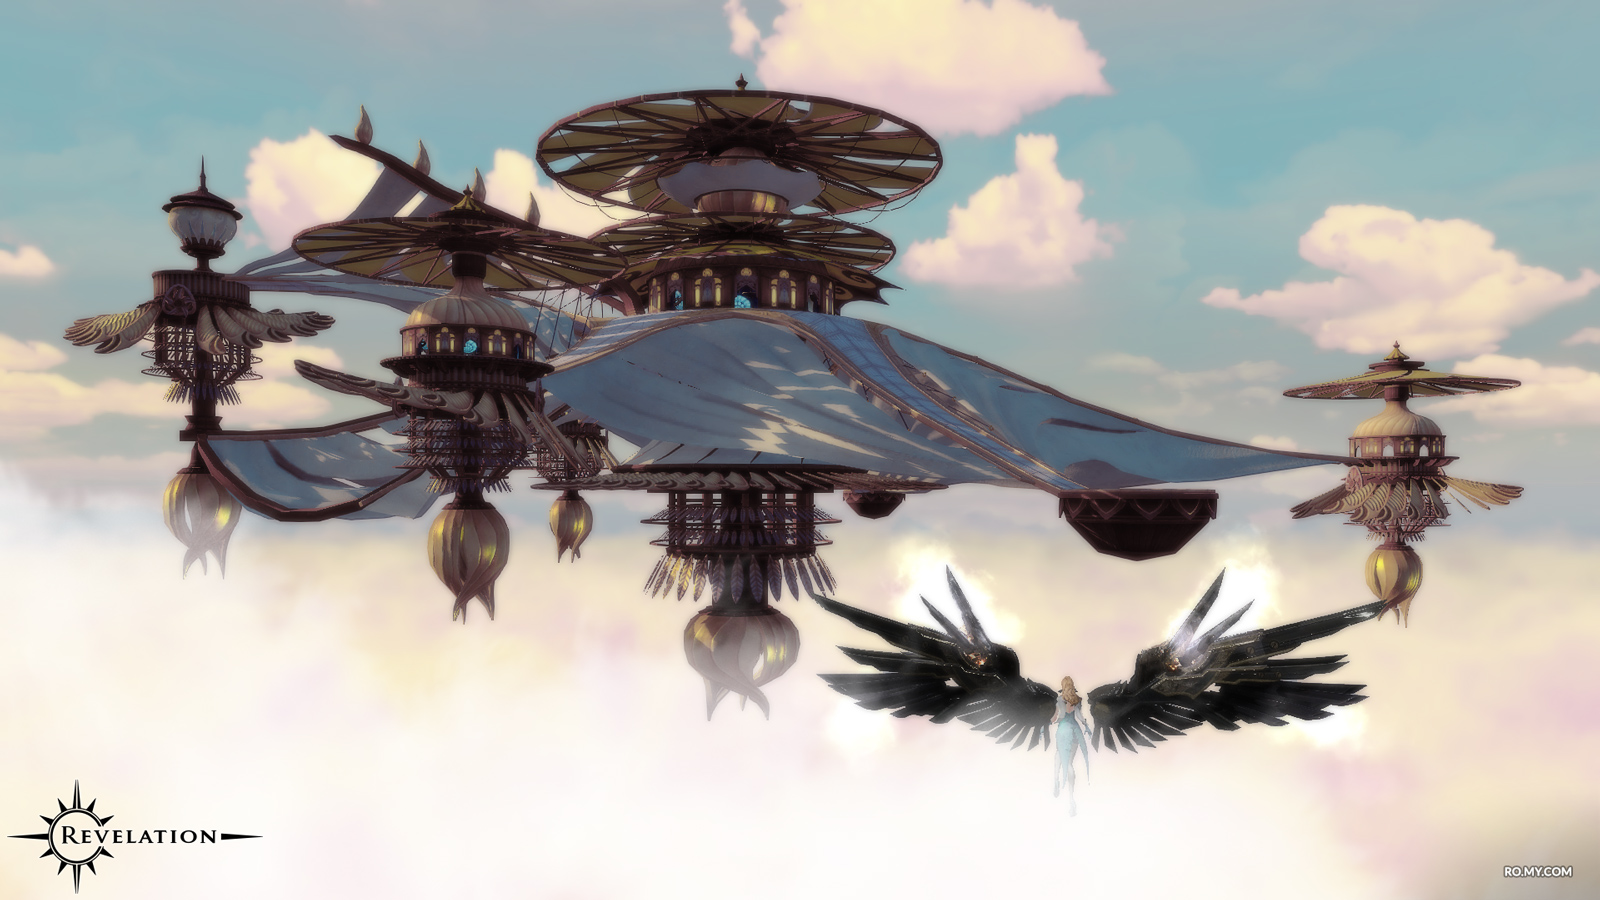 22 - Flight Mechanics: Are there MMOs with satisfying, fluid mobility, flight and sightseeing? Is Revelations Online the best example?